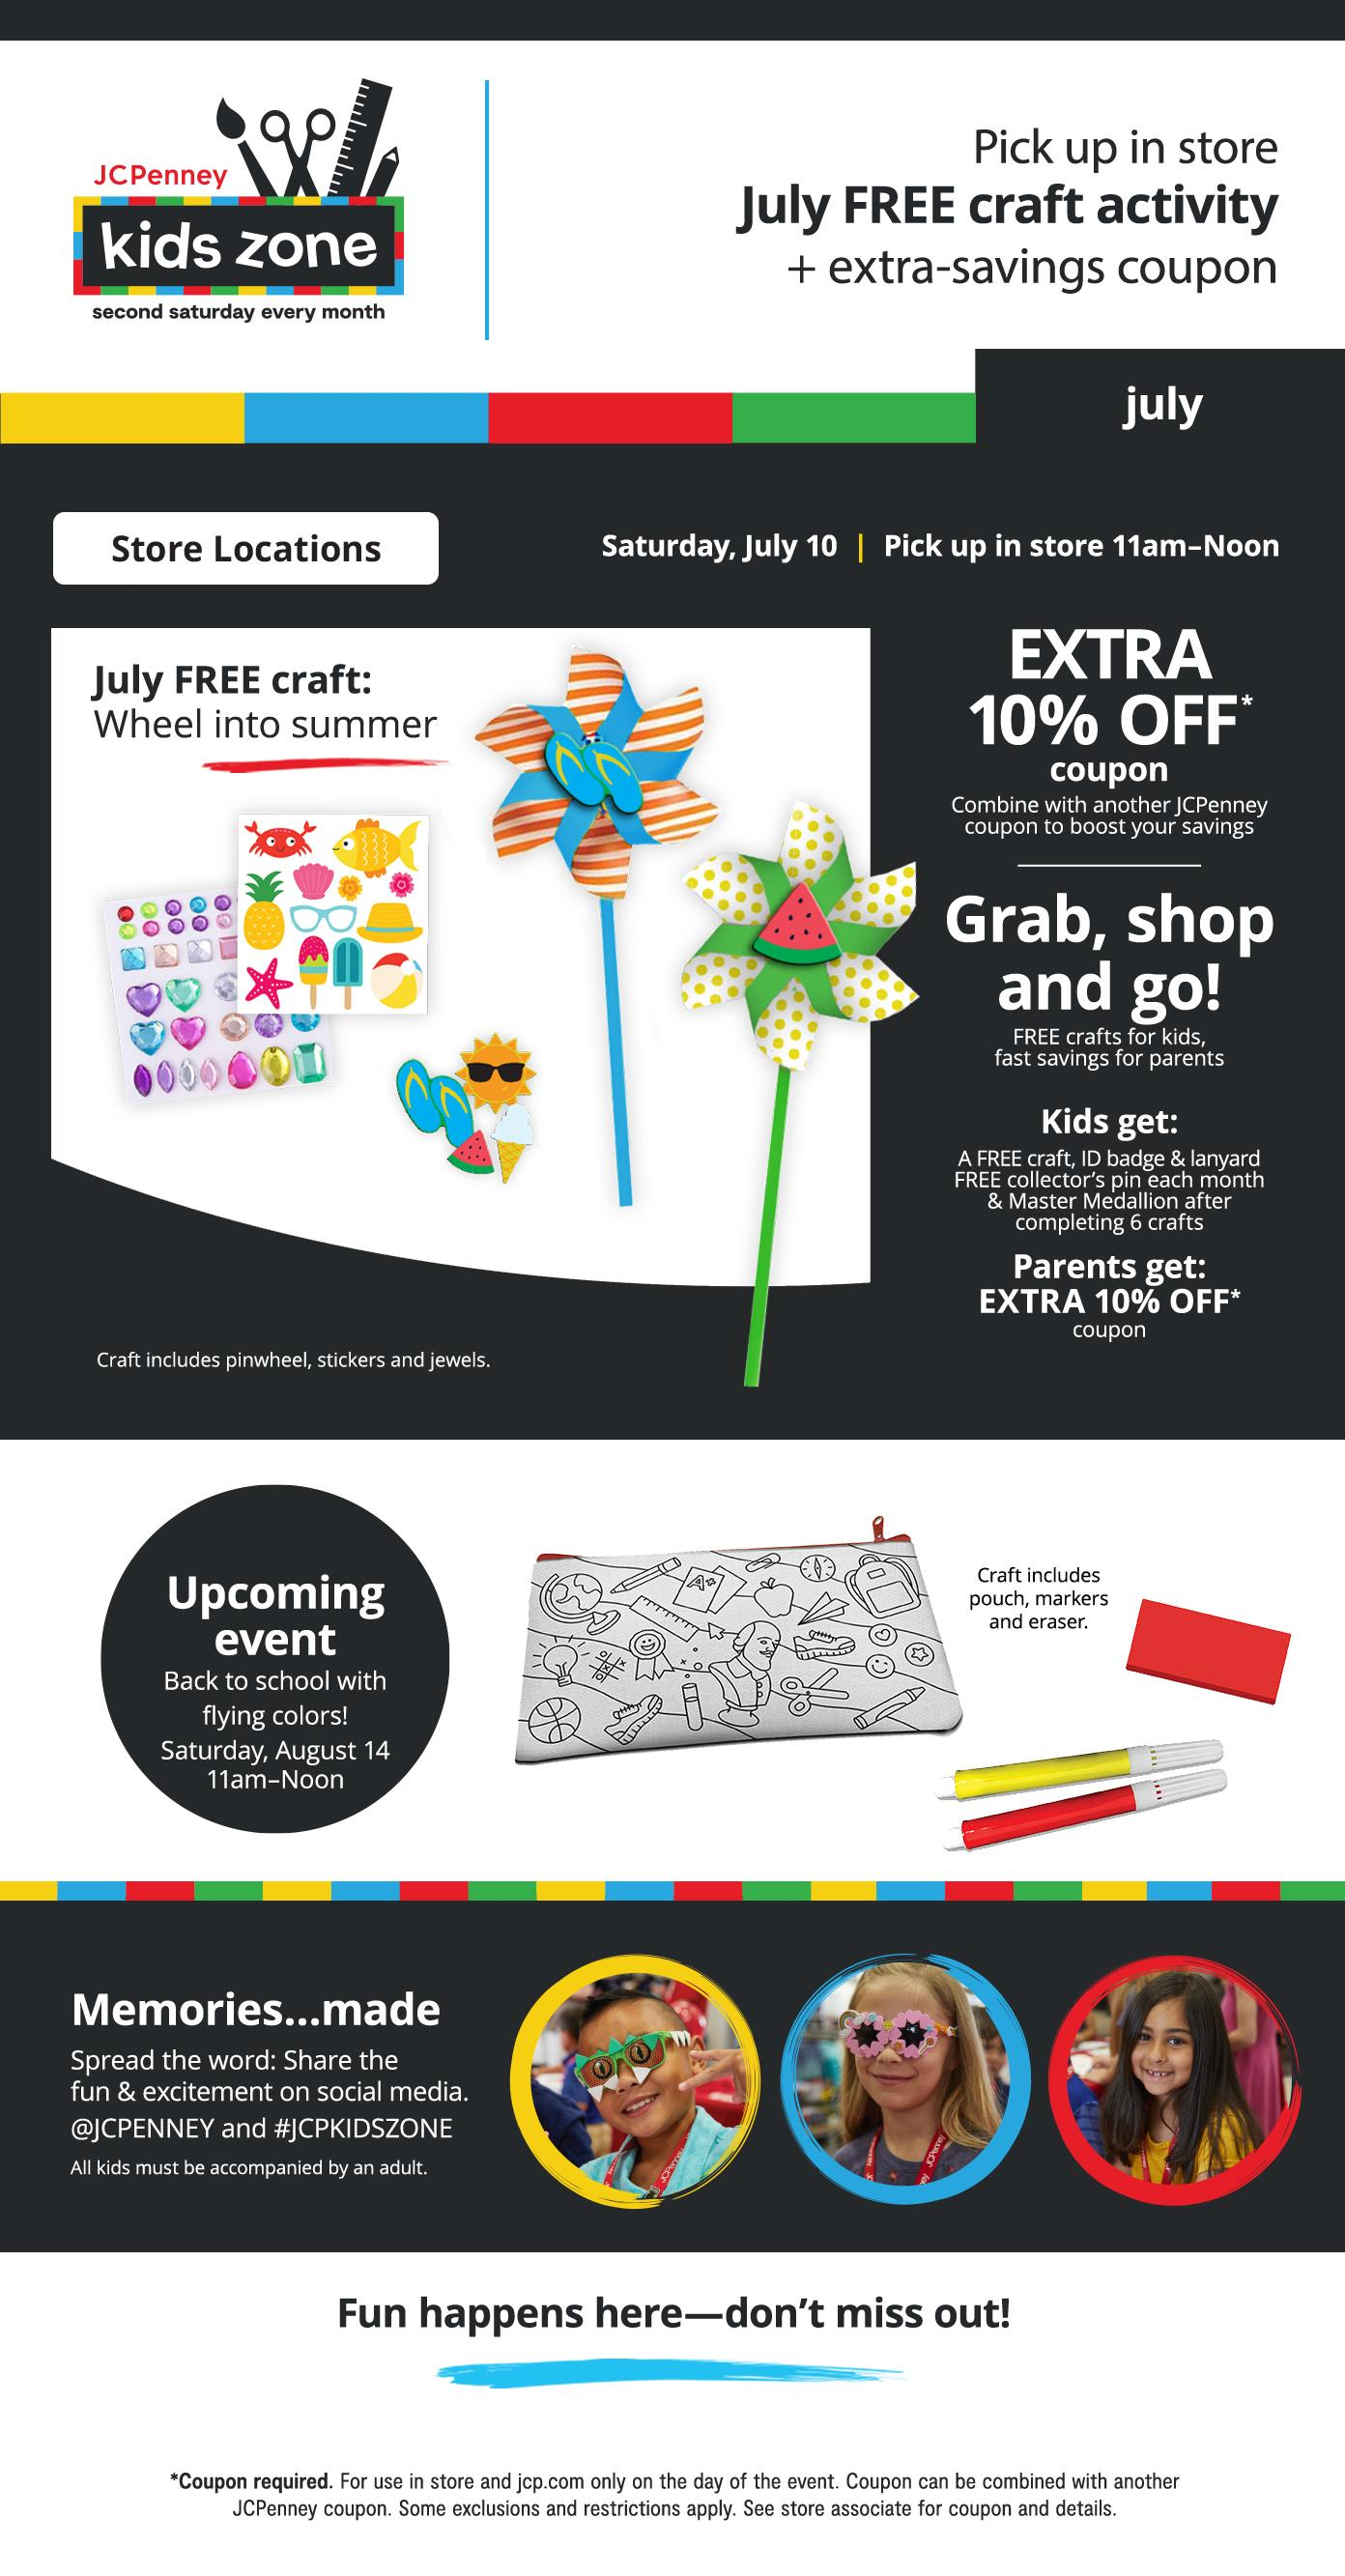 kids zone Saturday, July 10  |  Pick up in store 11am–Noon  Pick up in store July FREE craft activity + extra-savings coupon